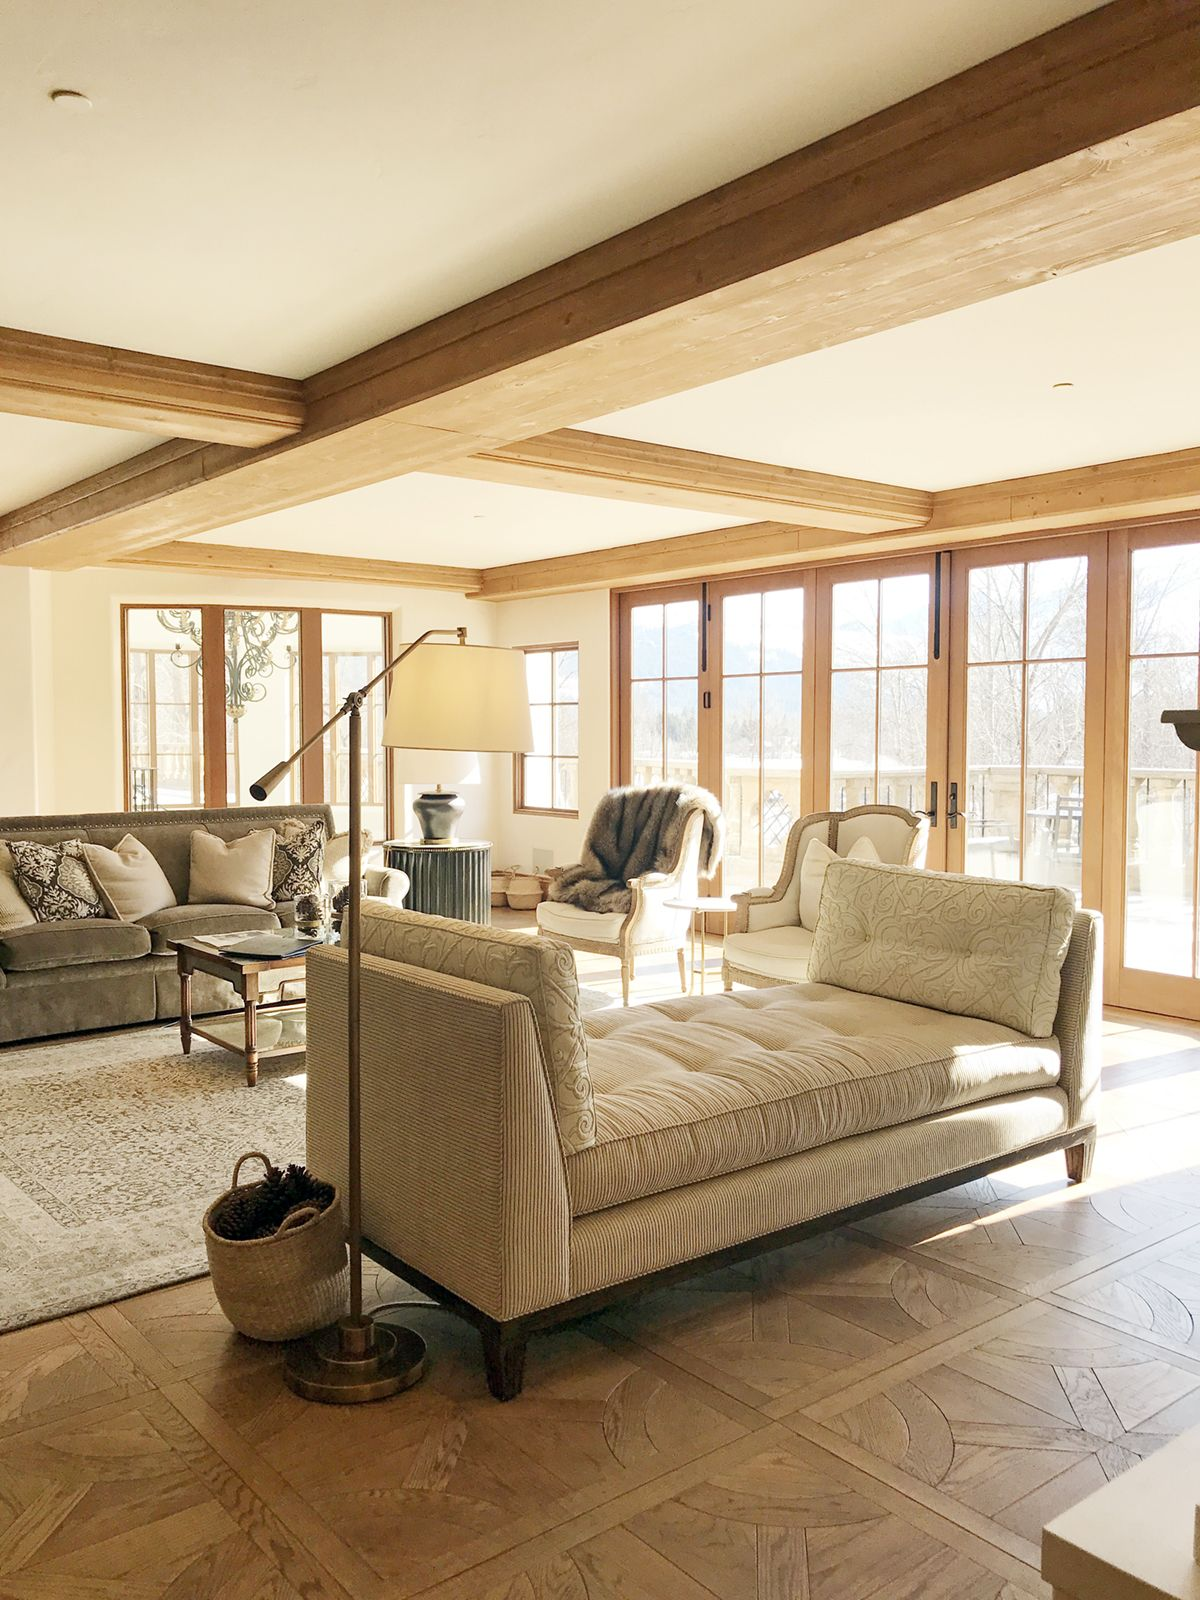 A Barndominium Allows You To Board Rustic Environments With Fashionable Comforts After You Modern Farmhouse Exterior Exterior House Colors Farmhouse Exterior